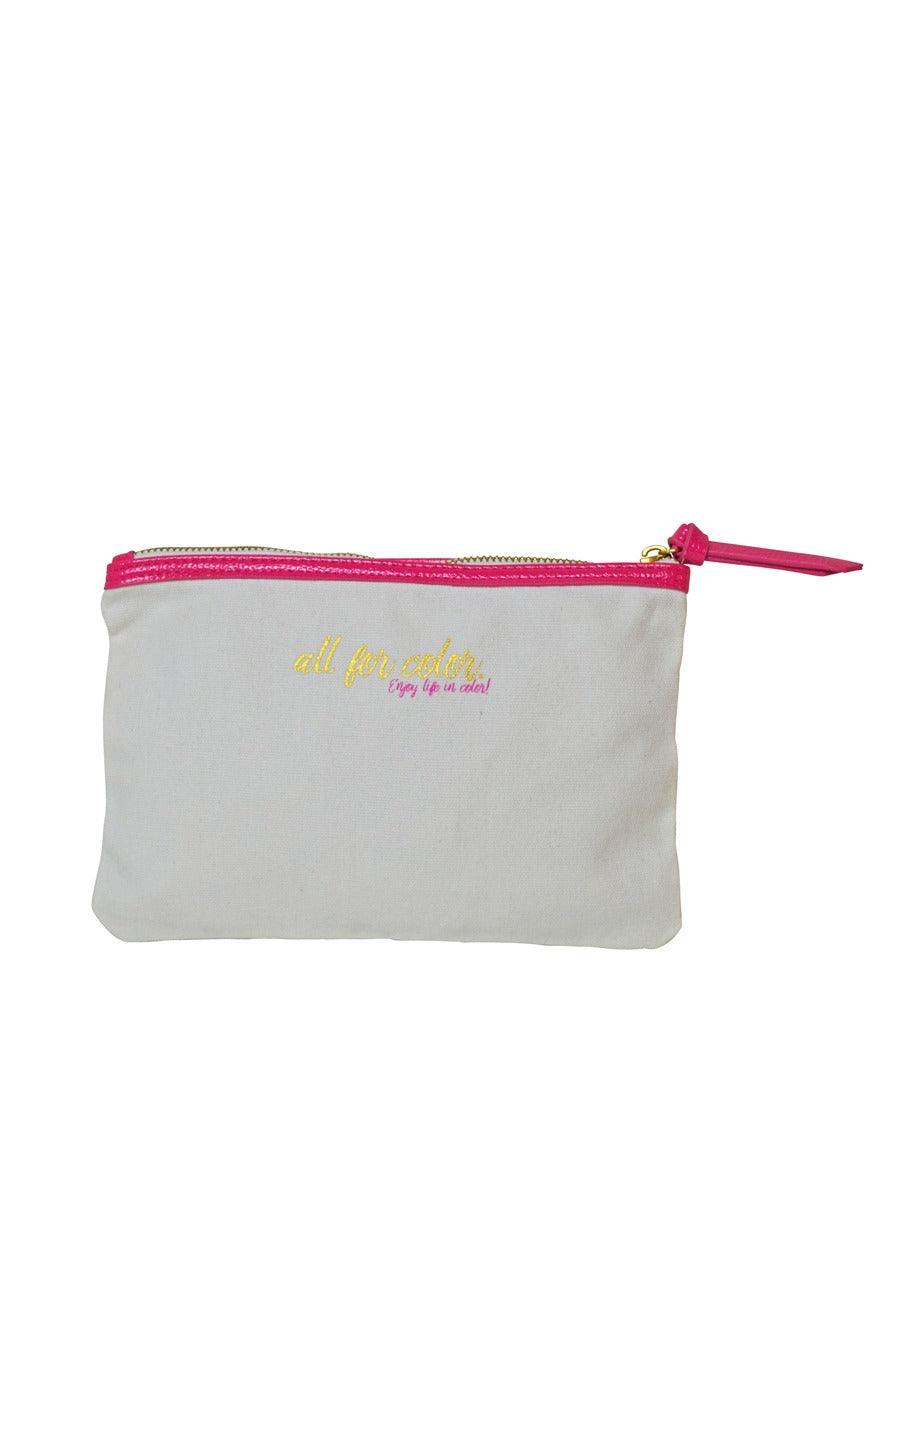 All For Color Branded Pouch - FINAL SALE